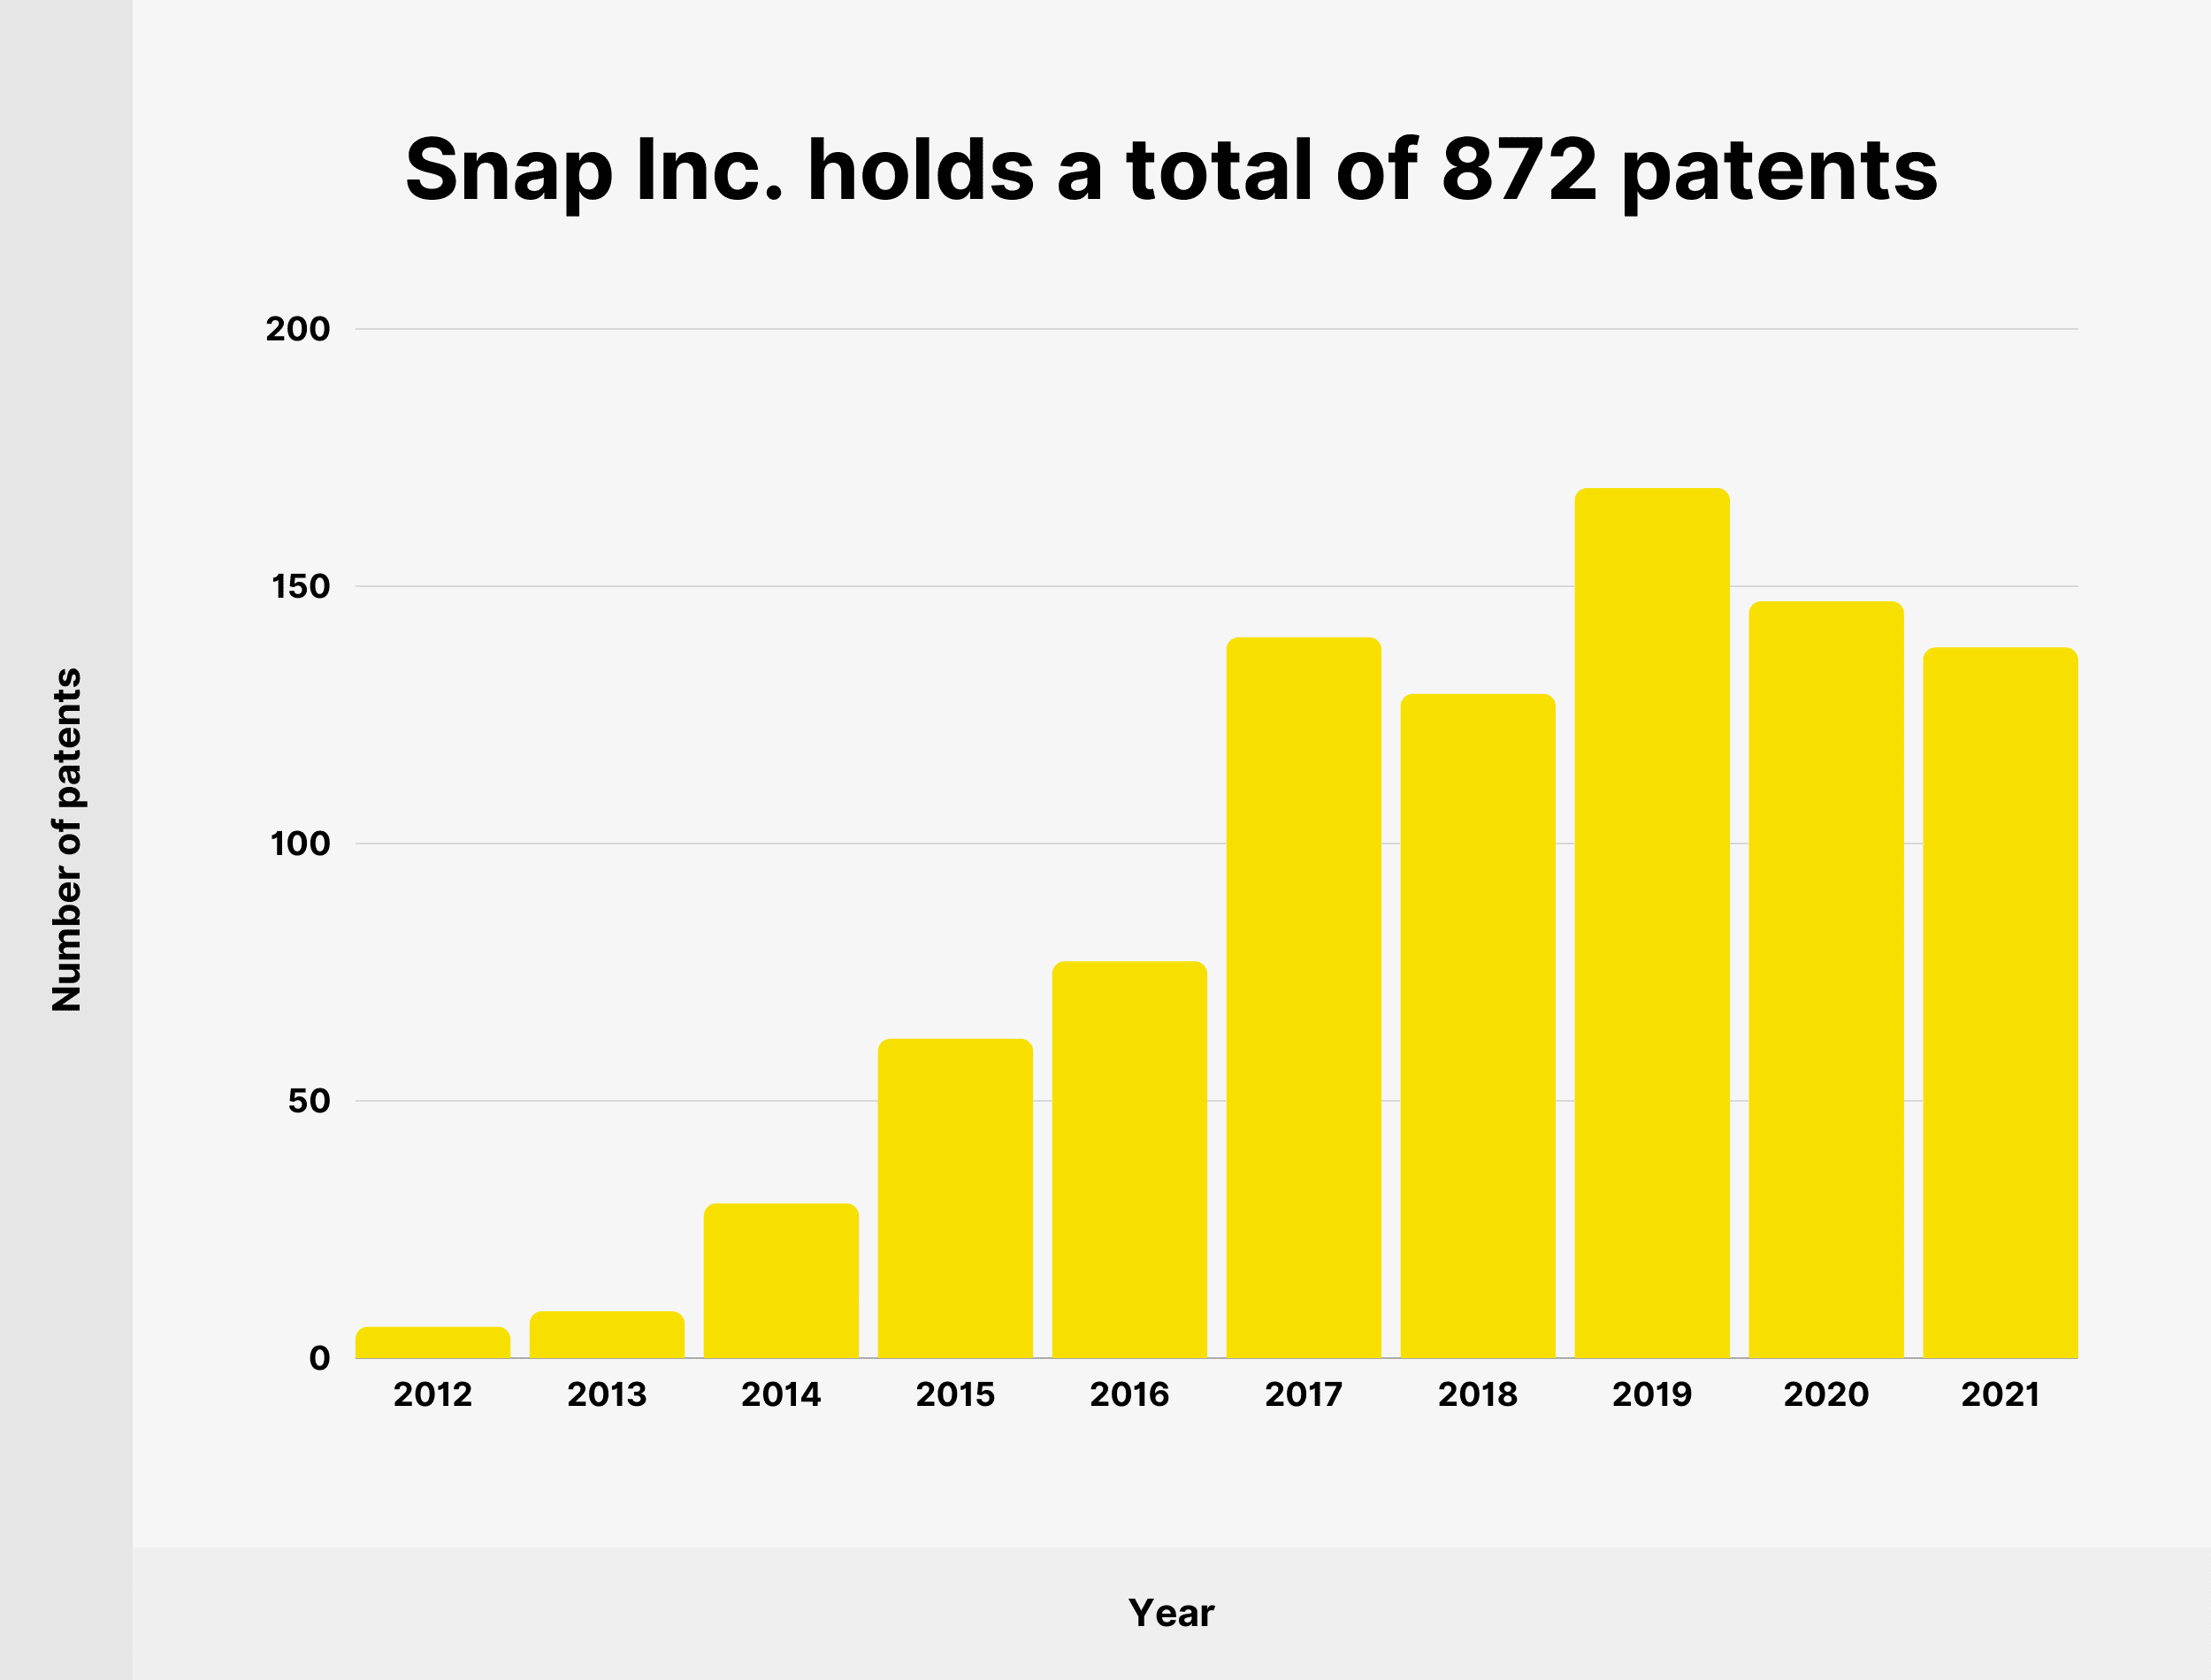 Snap Inc. holds a total of 872 patents